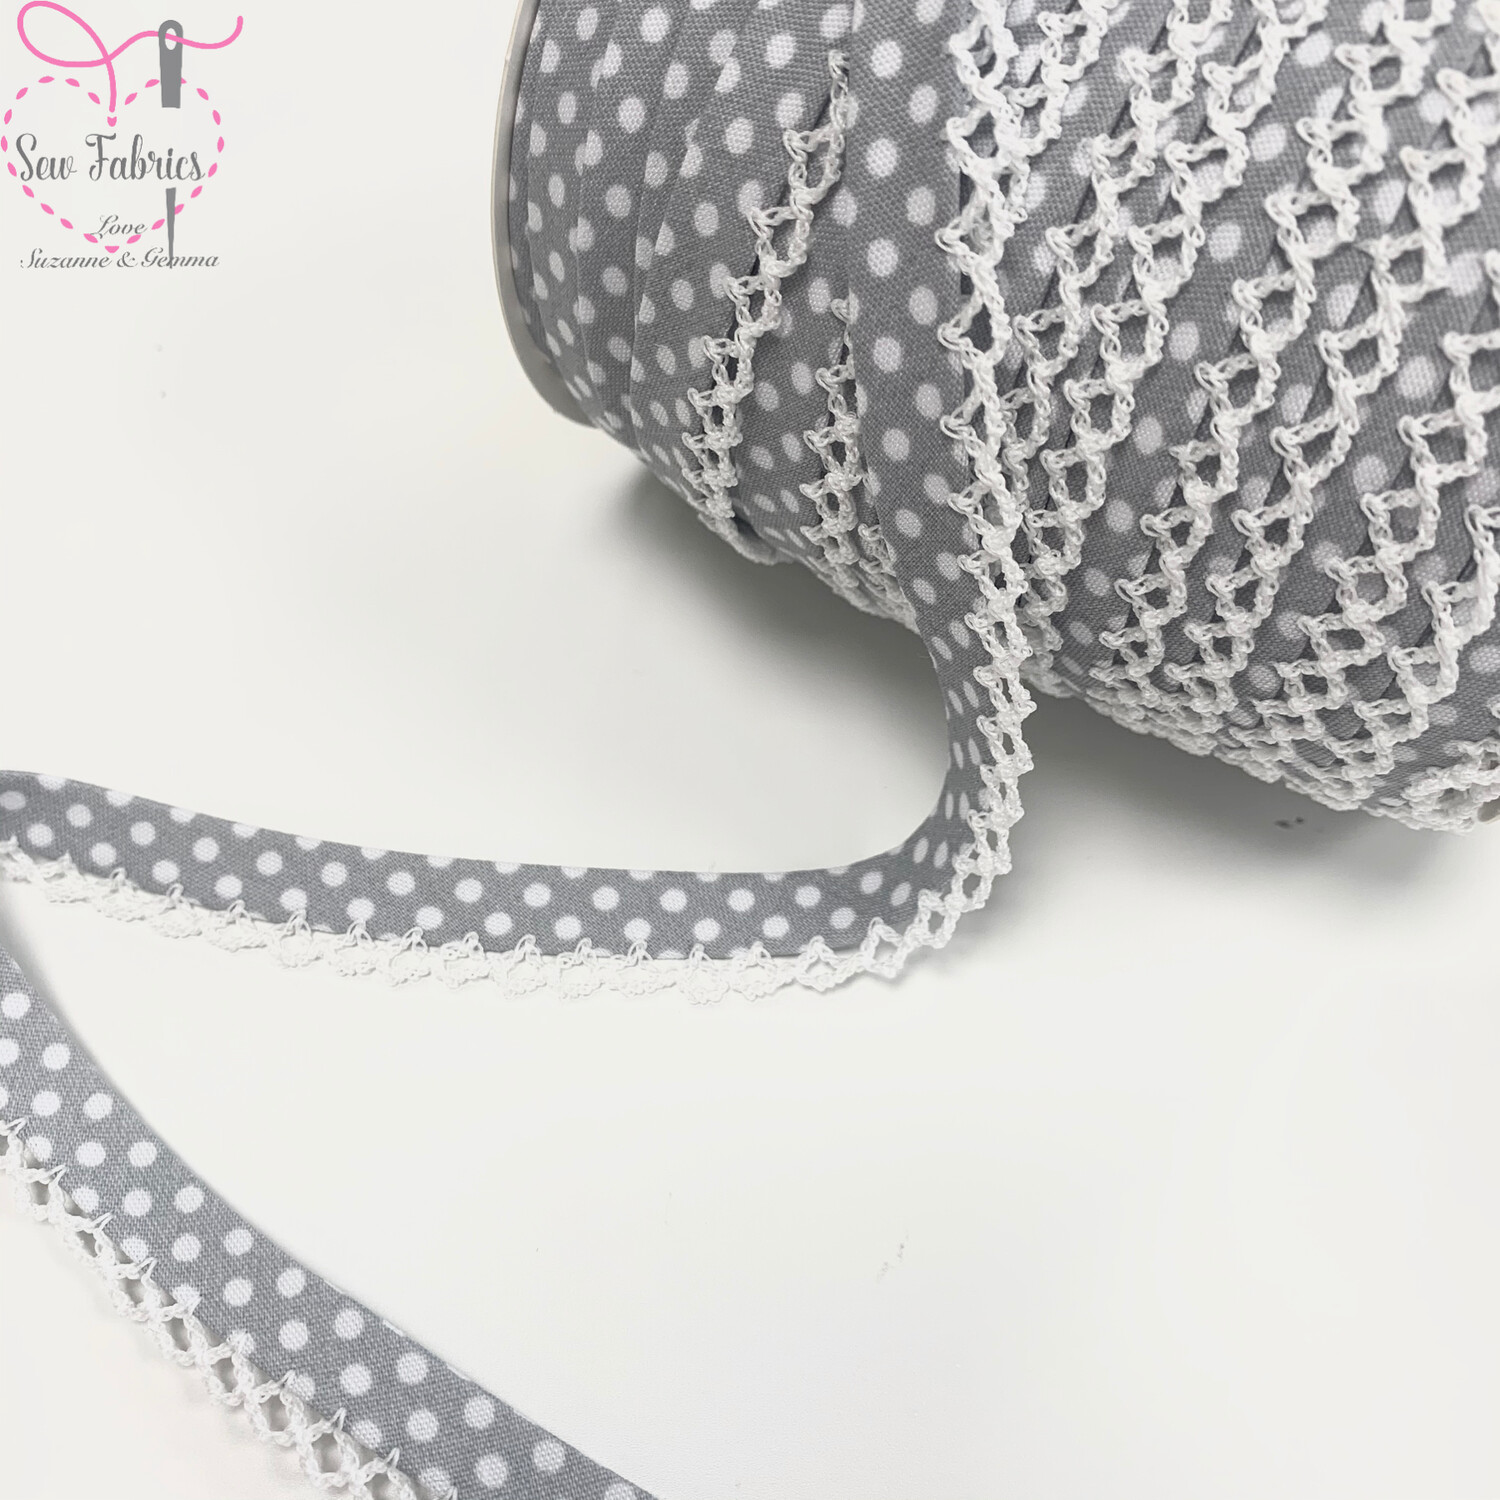 12mm Grey with White Polka Dots Pre-Folded Bias Binding with Lace Edge x 25mts Reel